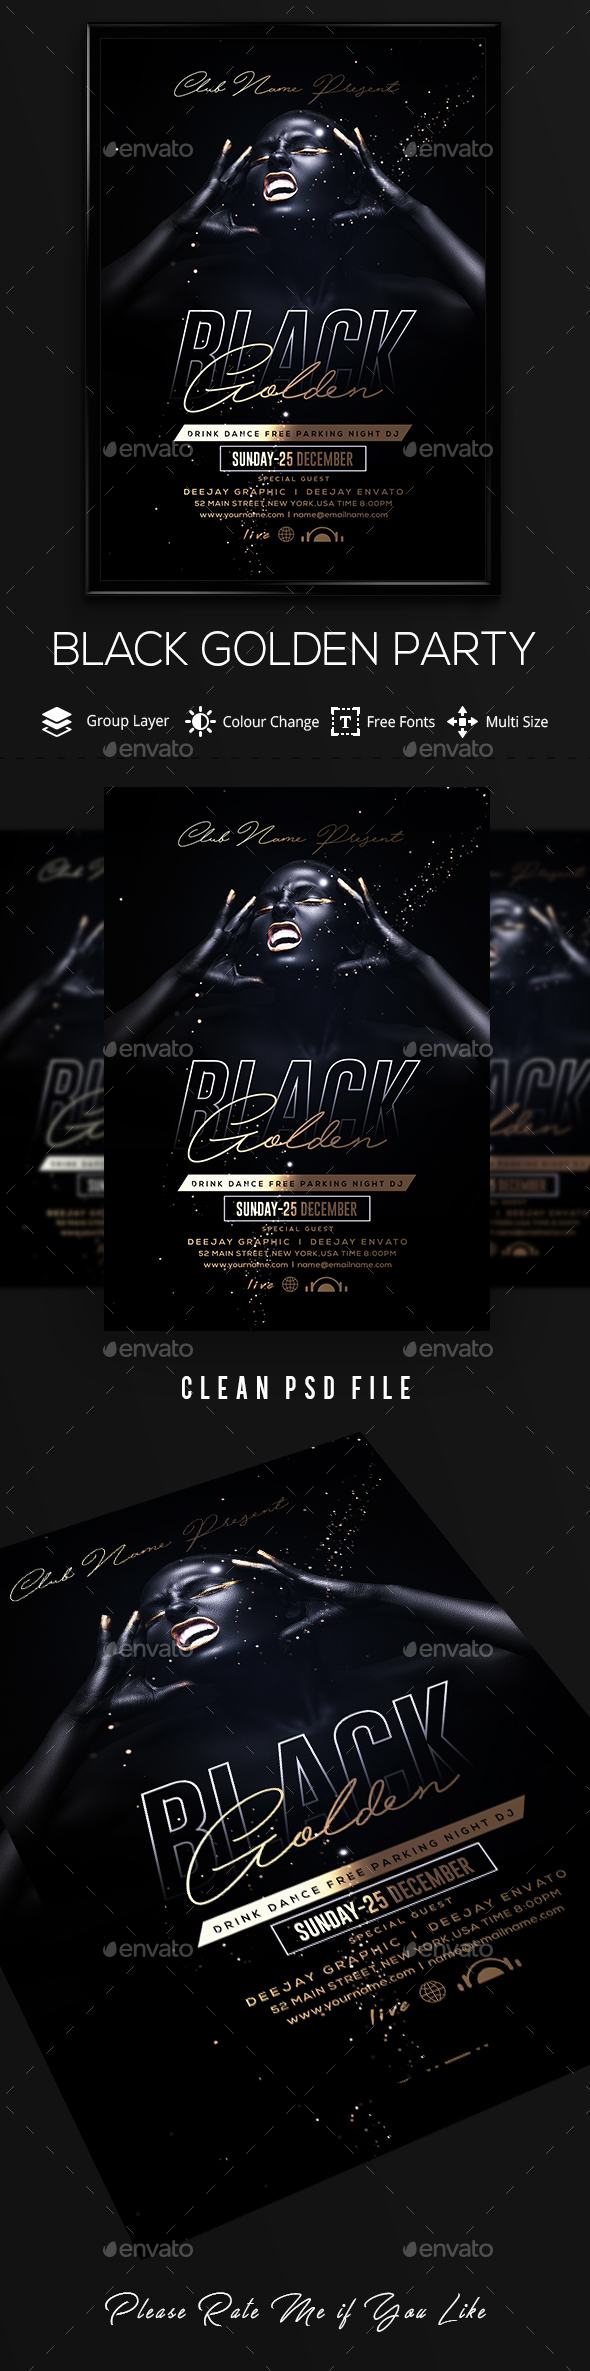 Golden Black Party Flyer - Clubs & Parties Events